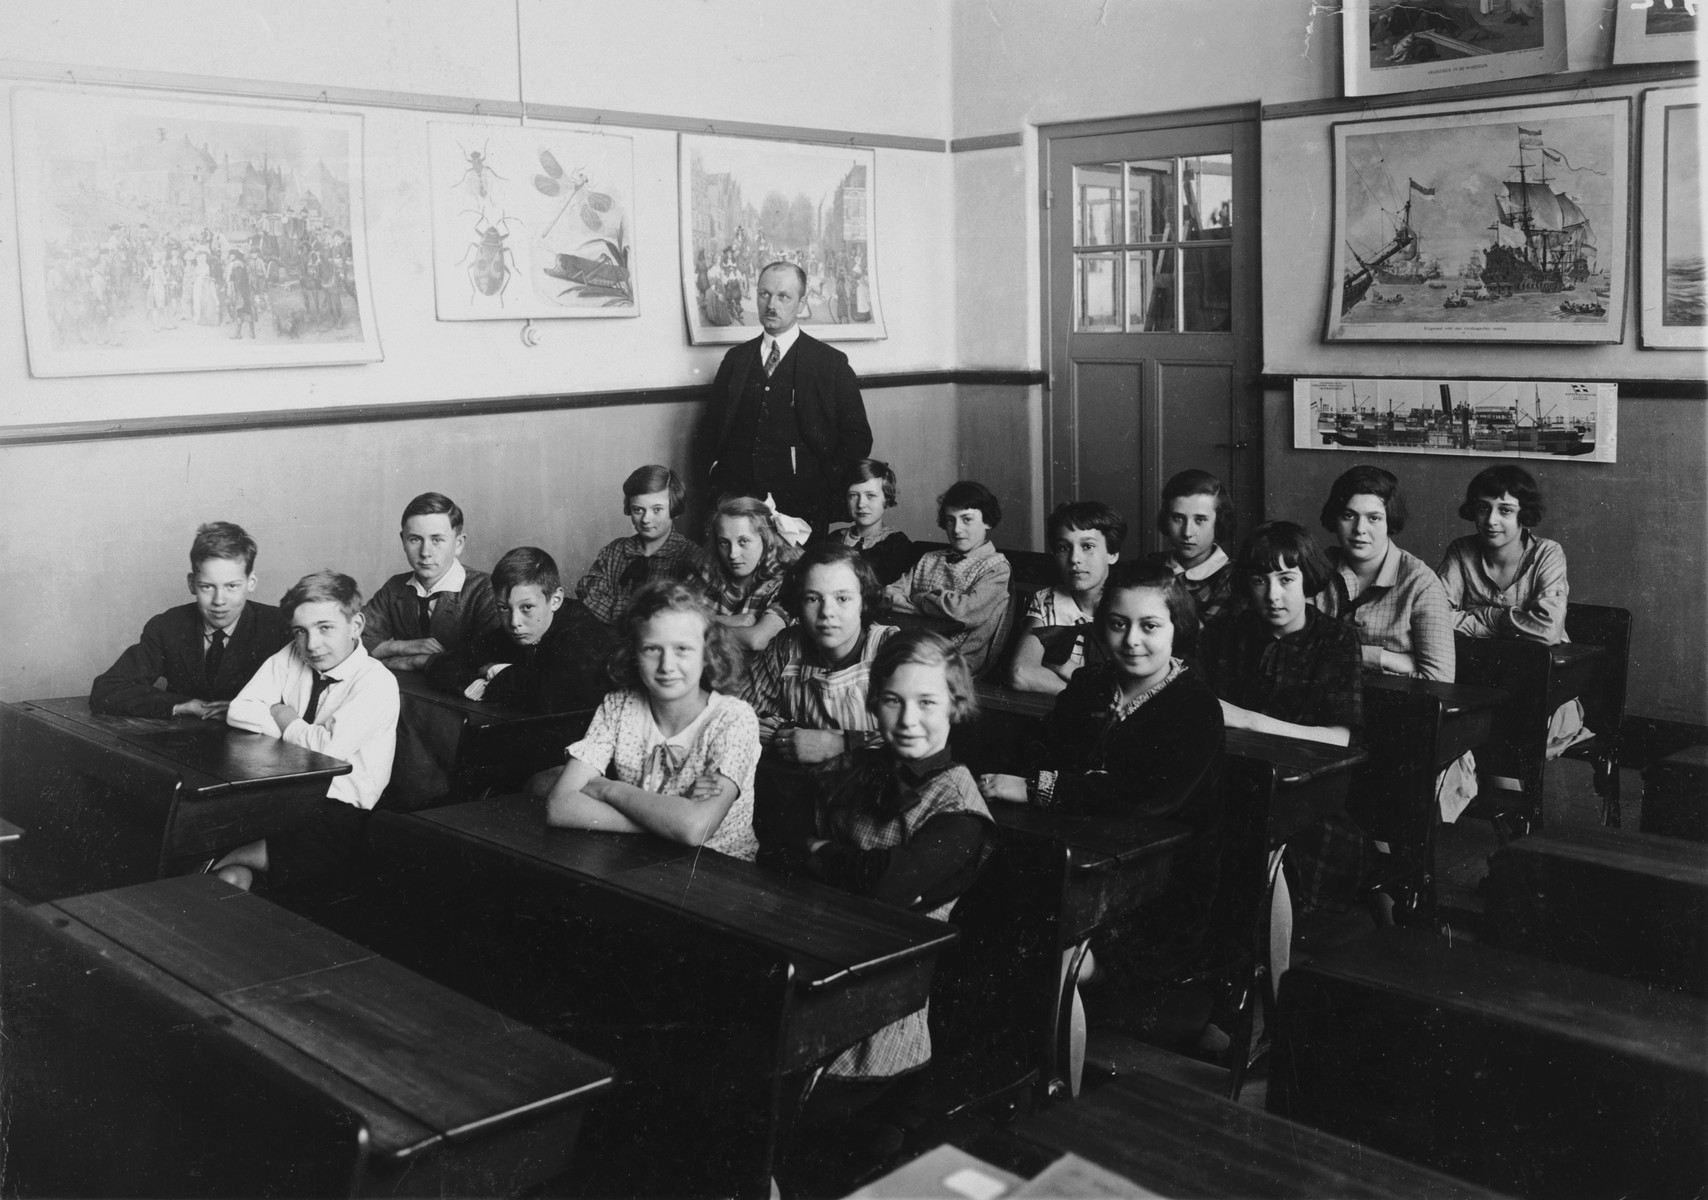 Group portrait of young children and teachers in a class in Amsterdam.